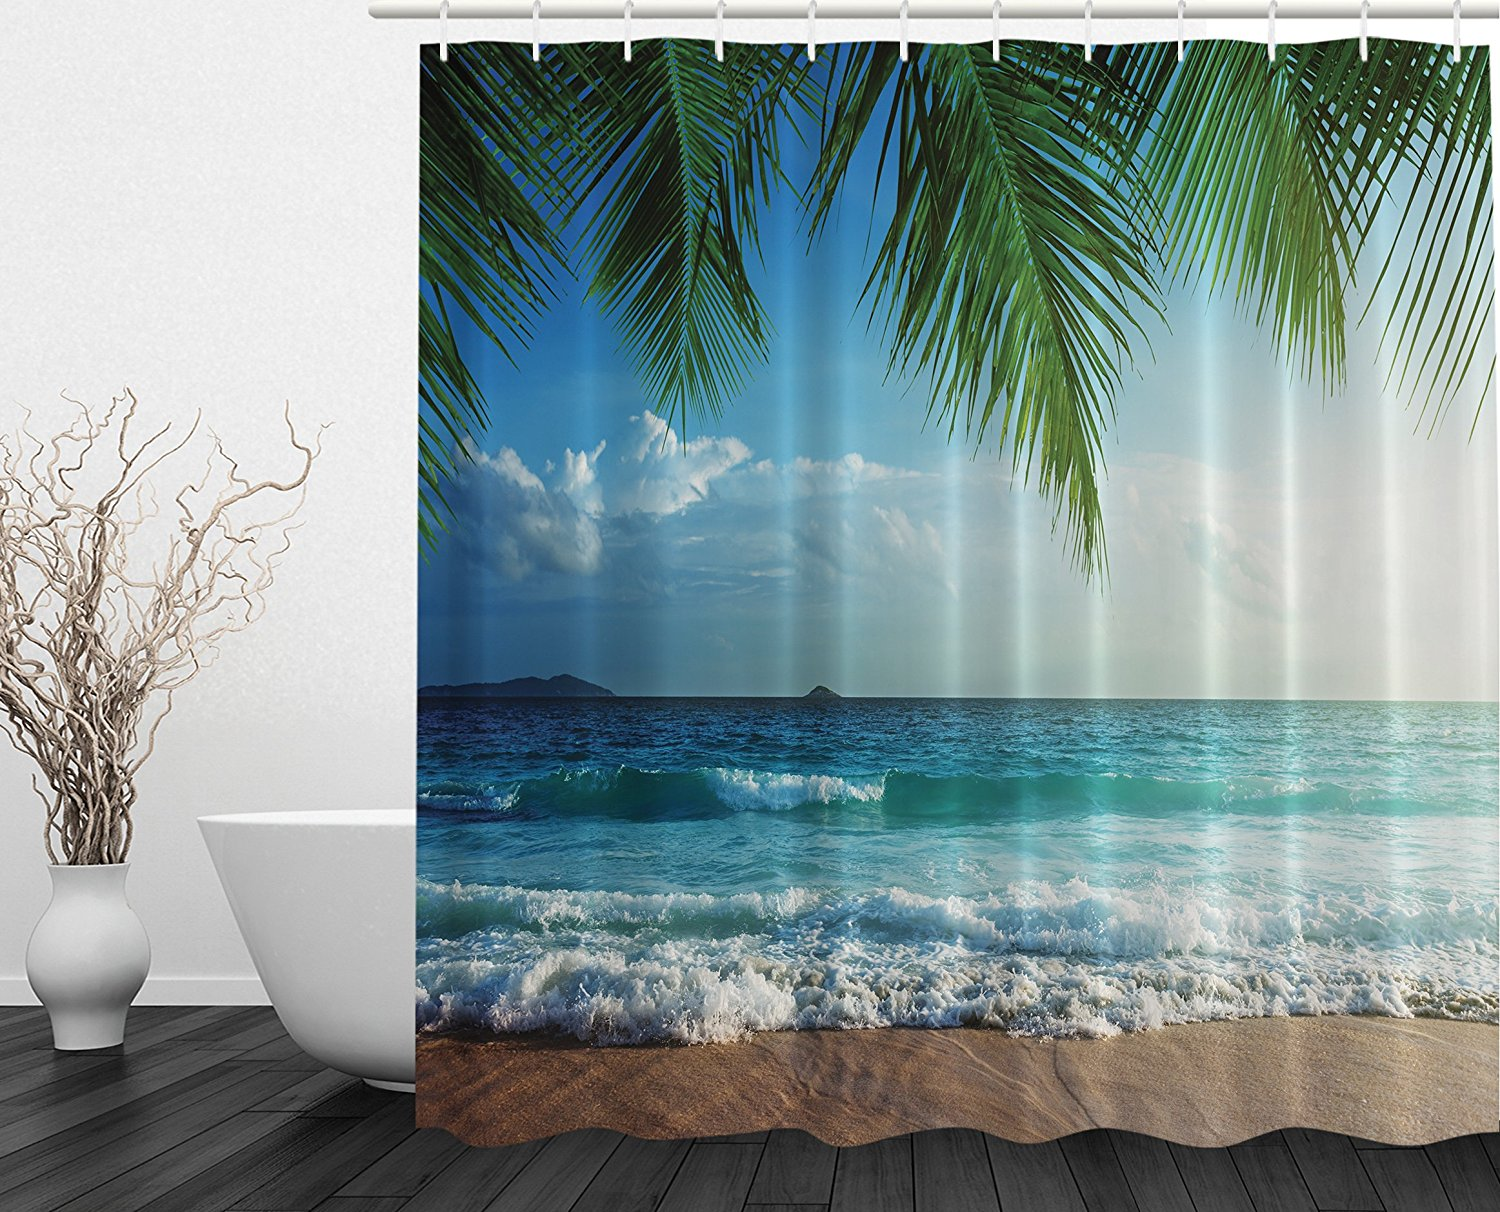 Palms Ocean Tropical Island Beach Decor Maldives High Resolution Photography Home Postcard Decor Bathroom Textile